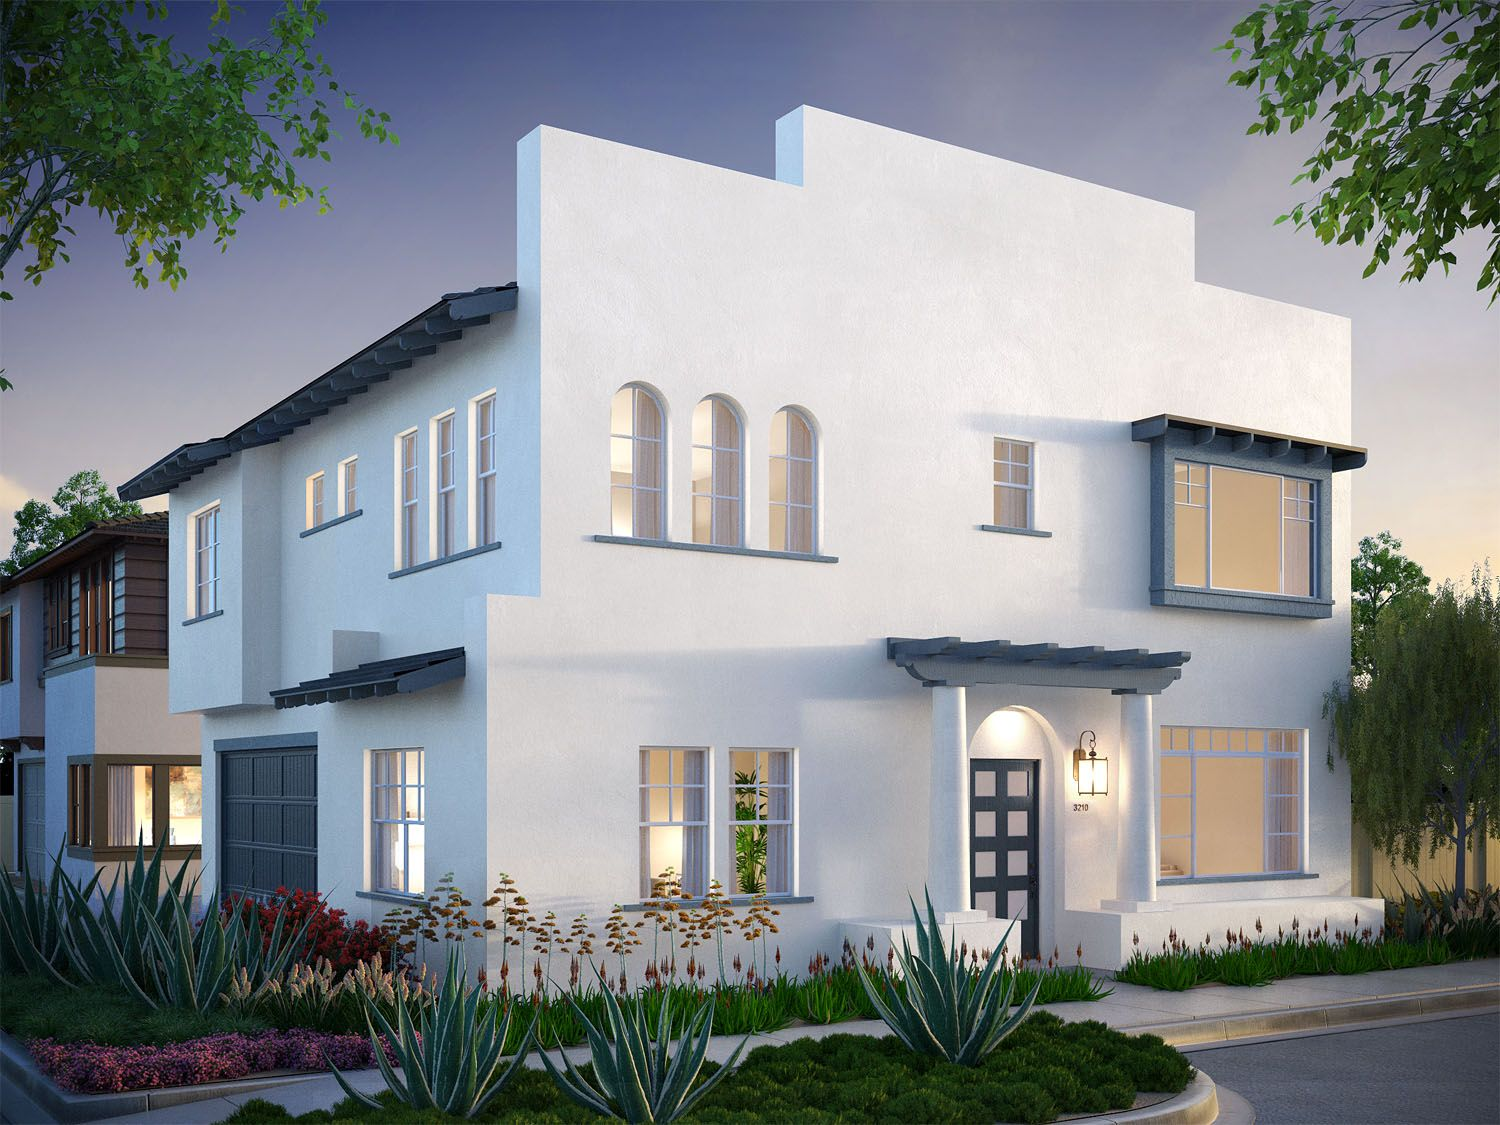 Single Family for Sale at Irving House - Residence 1 2007 North Orange-Olive Road Orange, California 92865 United States